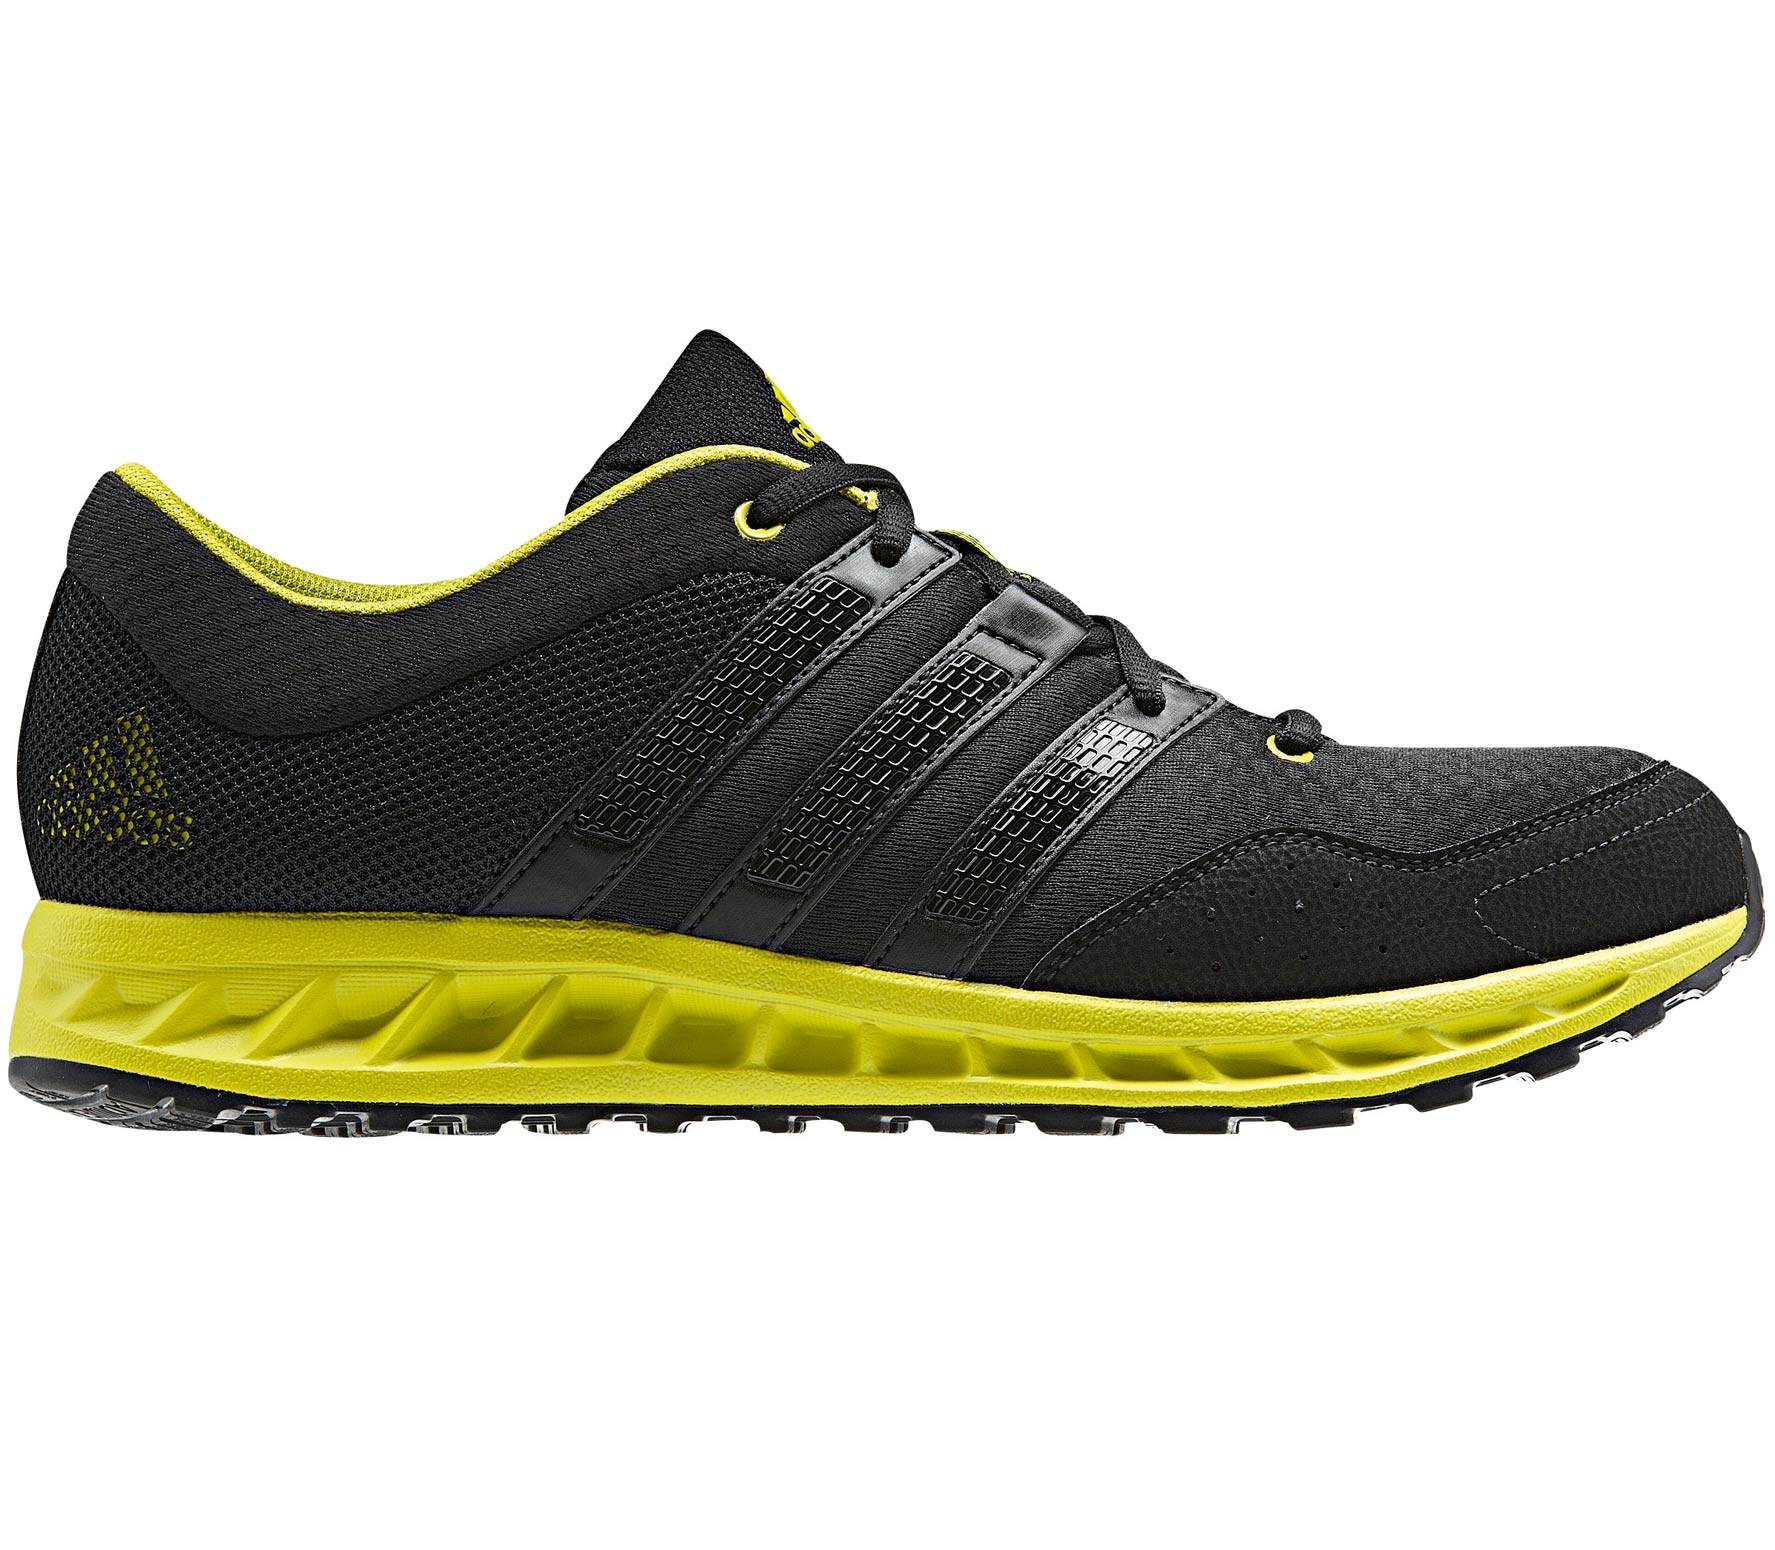 Adidas - Running Shoes Men Falcon Elite 2 - HW12